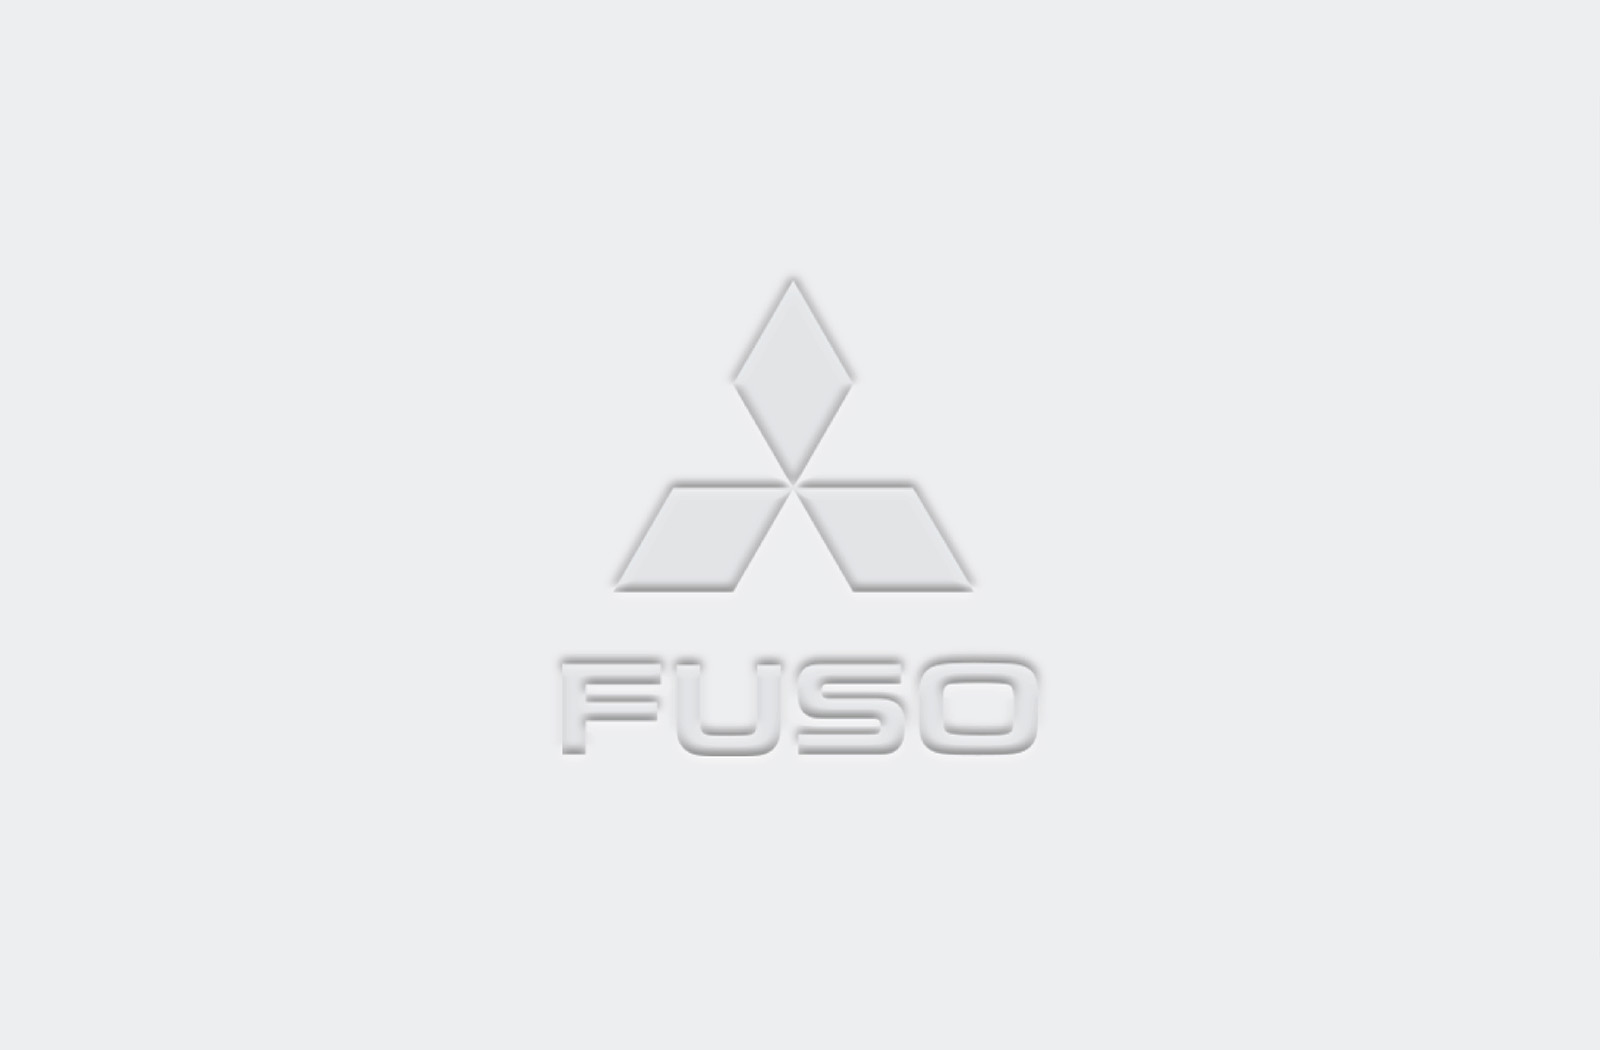 Fuso Trucks logo with pillow emboss effect on white paper background